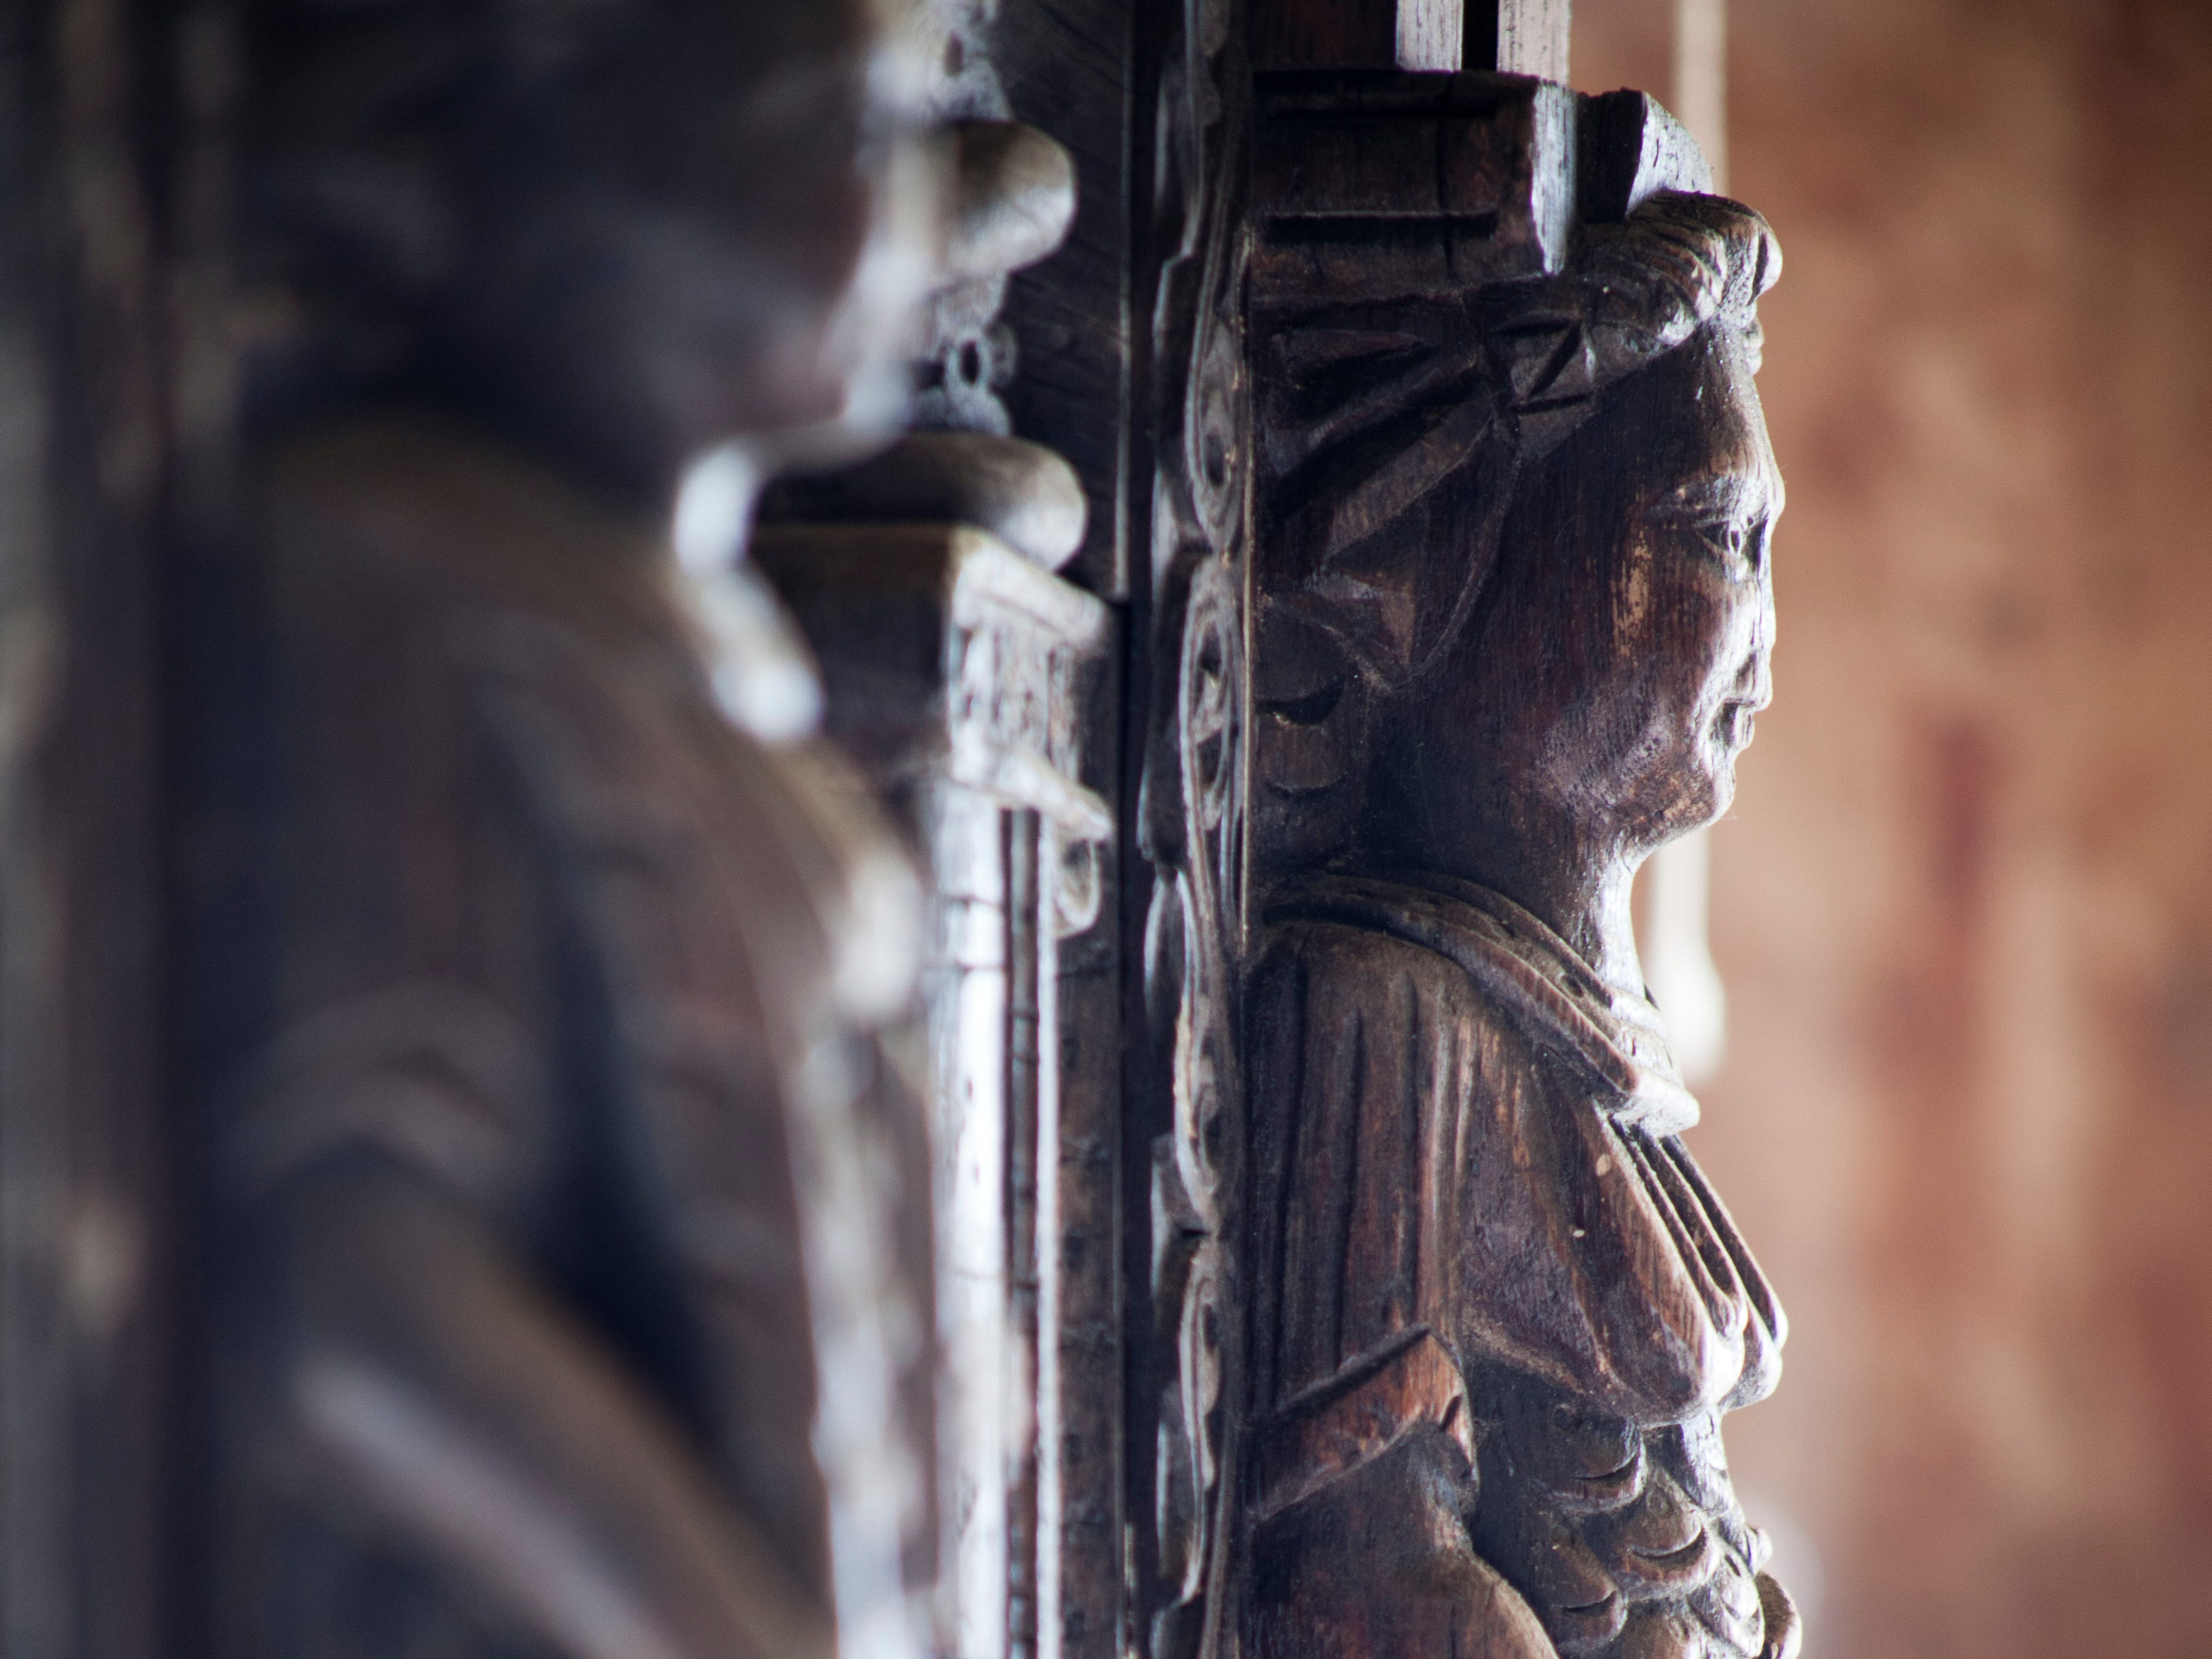 One of the many Jacobean-era wooden carvings that still remain in Hopwood Hall. The esatate has been recognized for its unique collection of unusual woodwork, including carvings of lions' heads that are so old they were carved before most people in England had ever seen a lion.